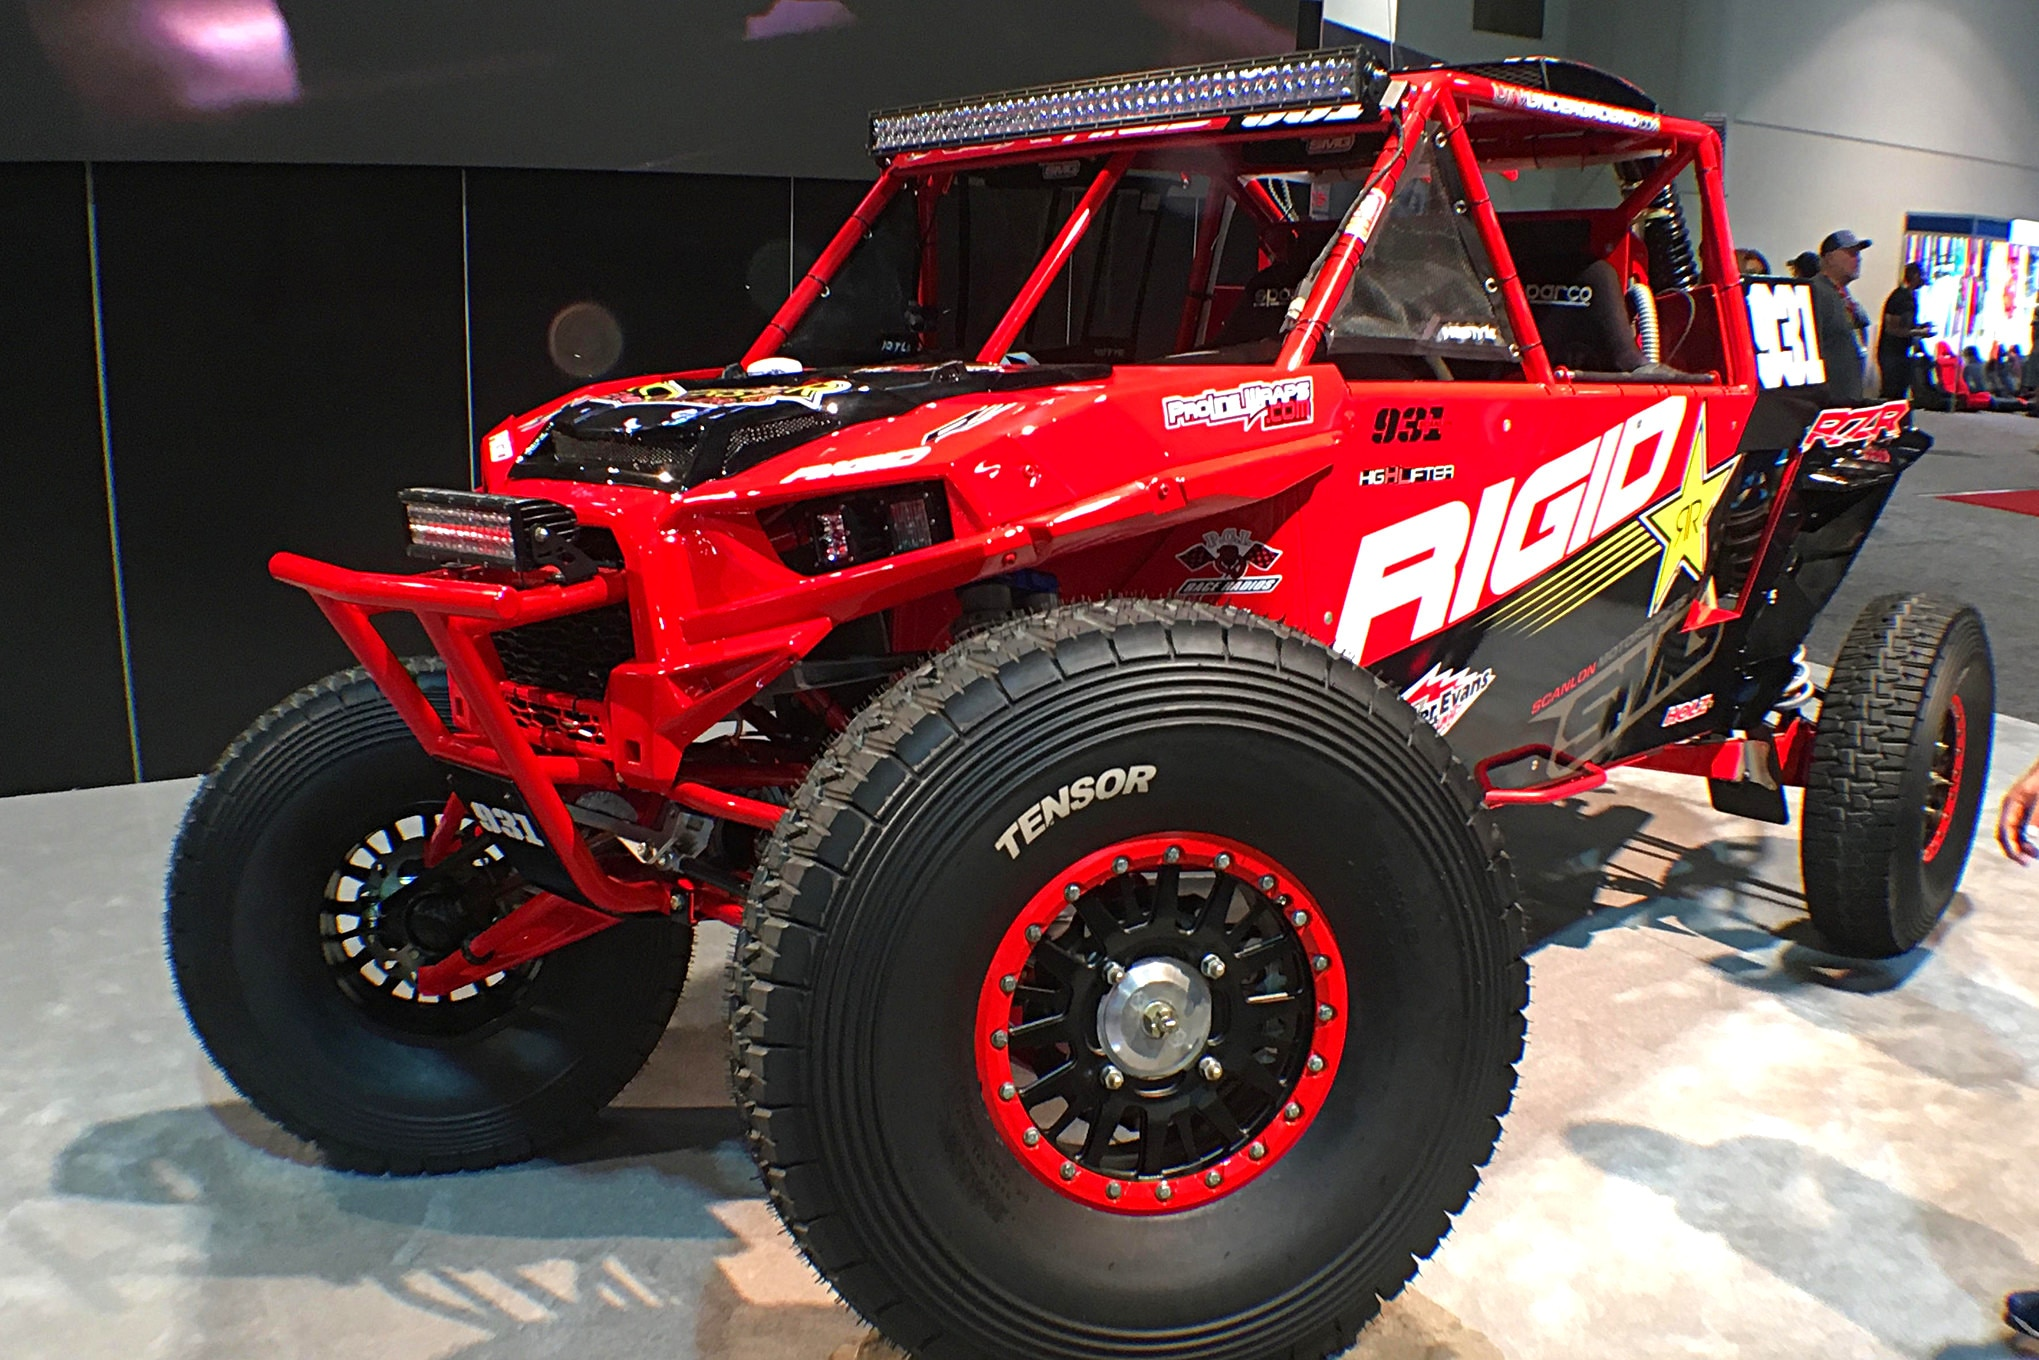 038 2017 sema show polaris rigid.JPG